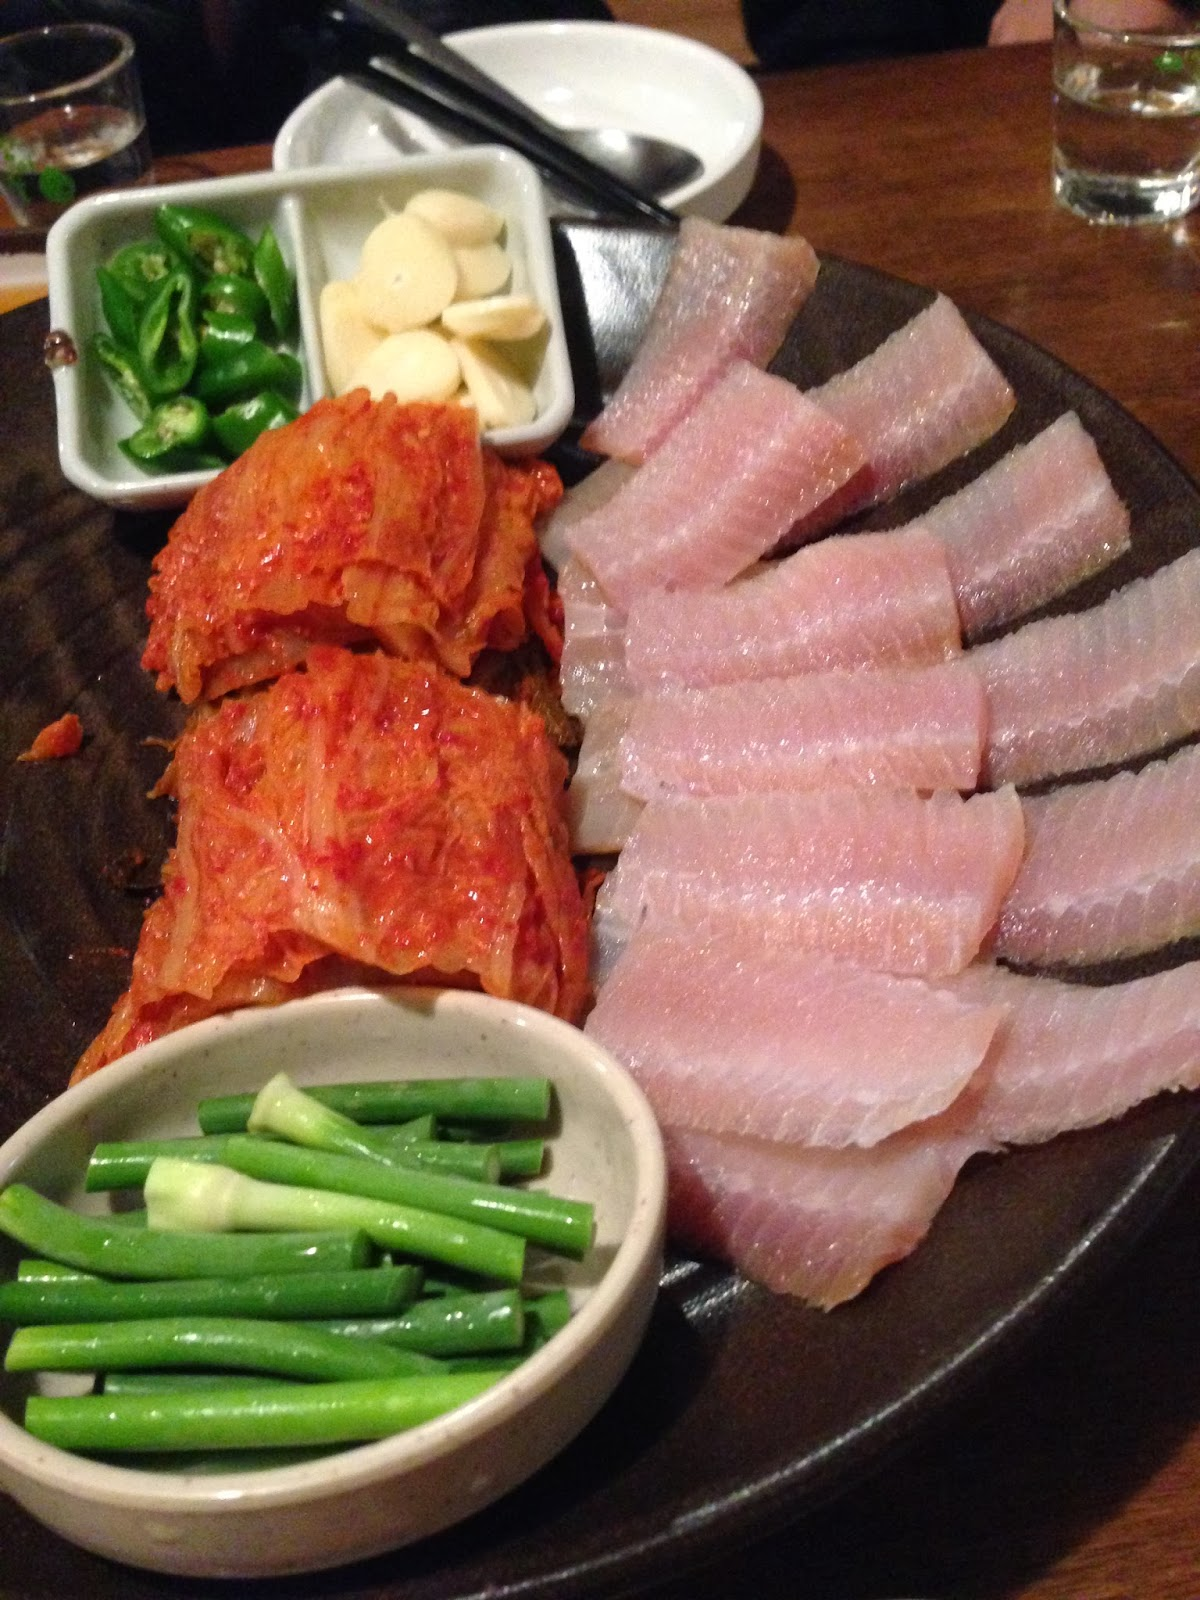 Travelogue around asia pacific part ii 7 strange for Urine smells like fish after eating fish